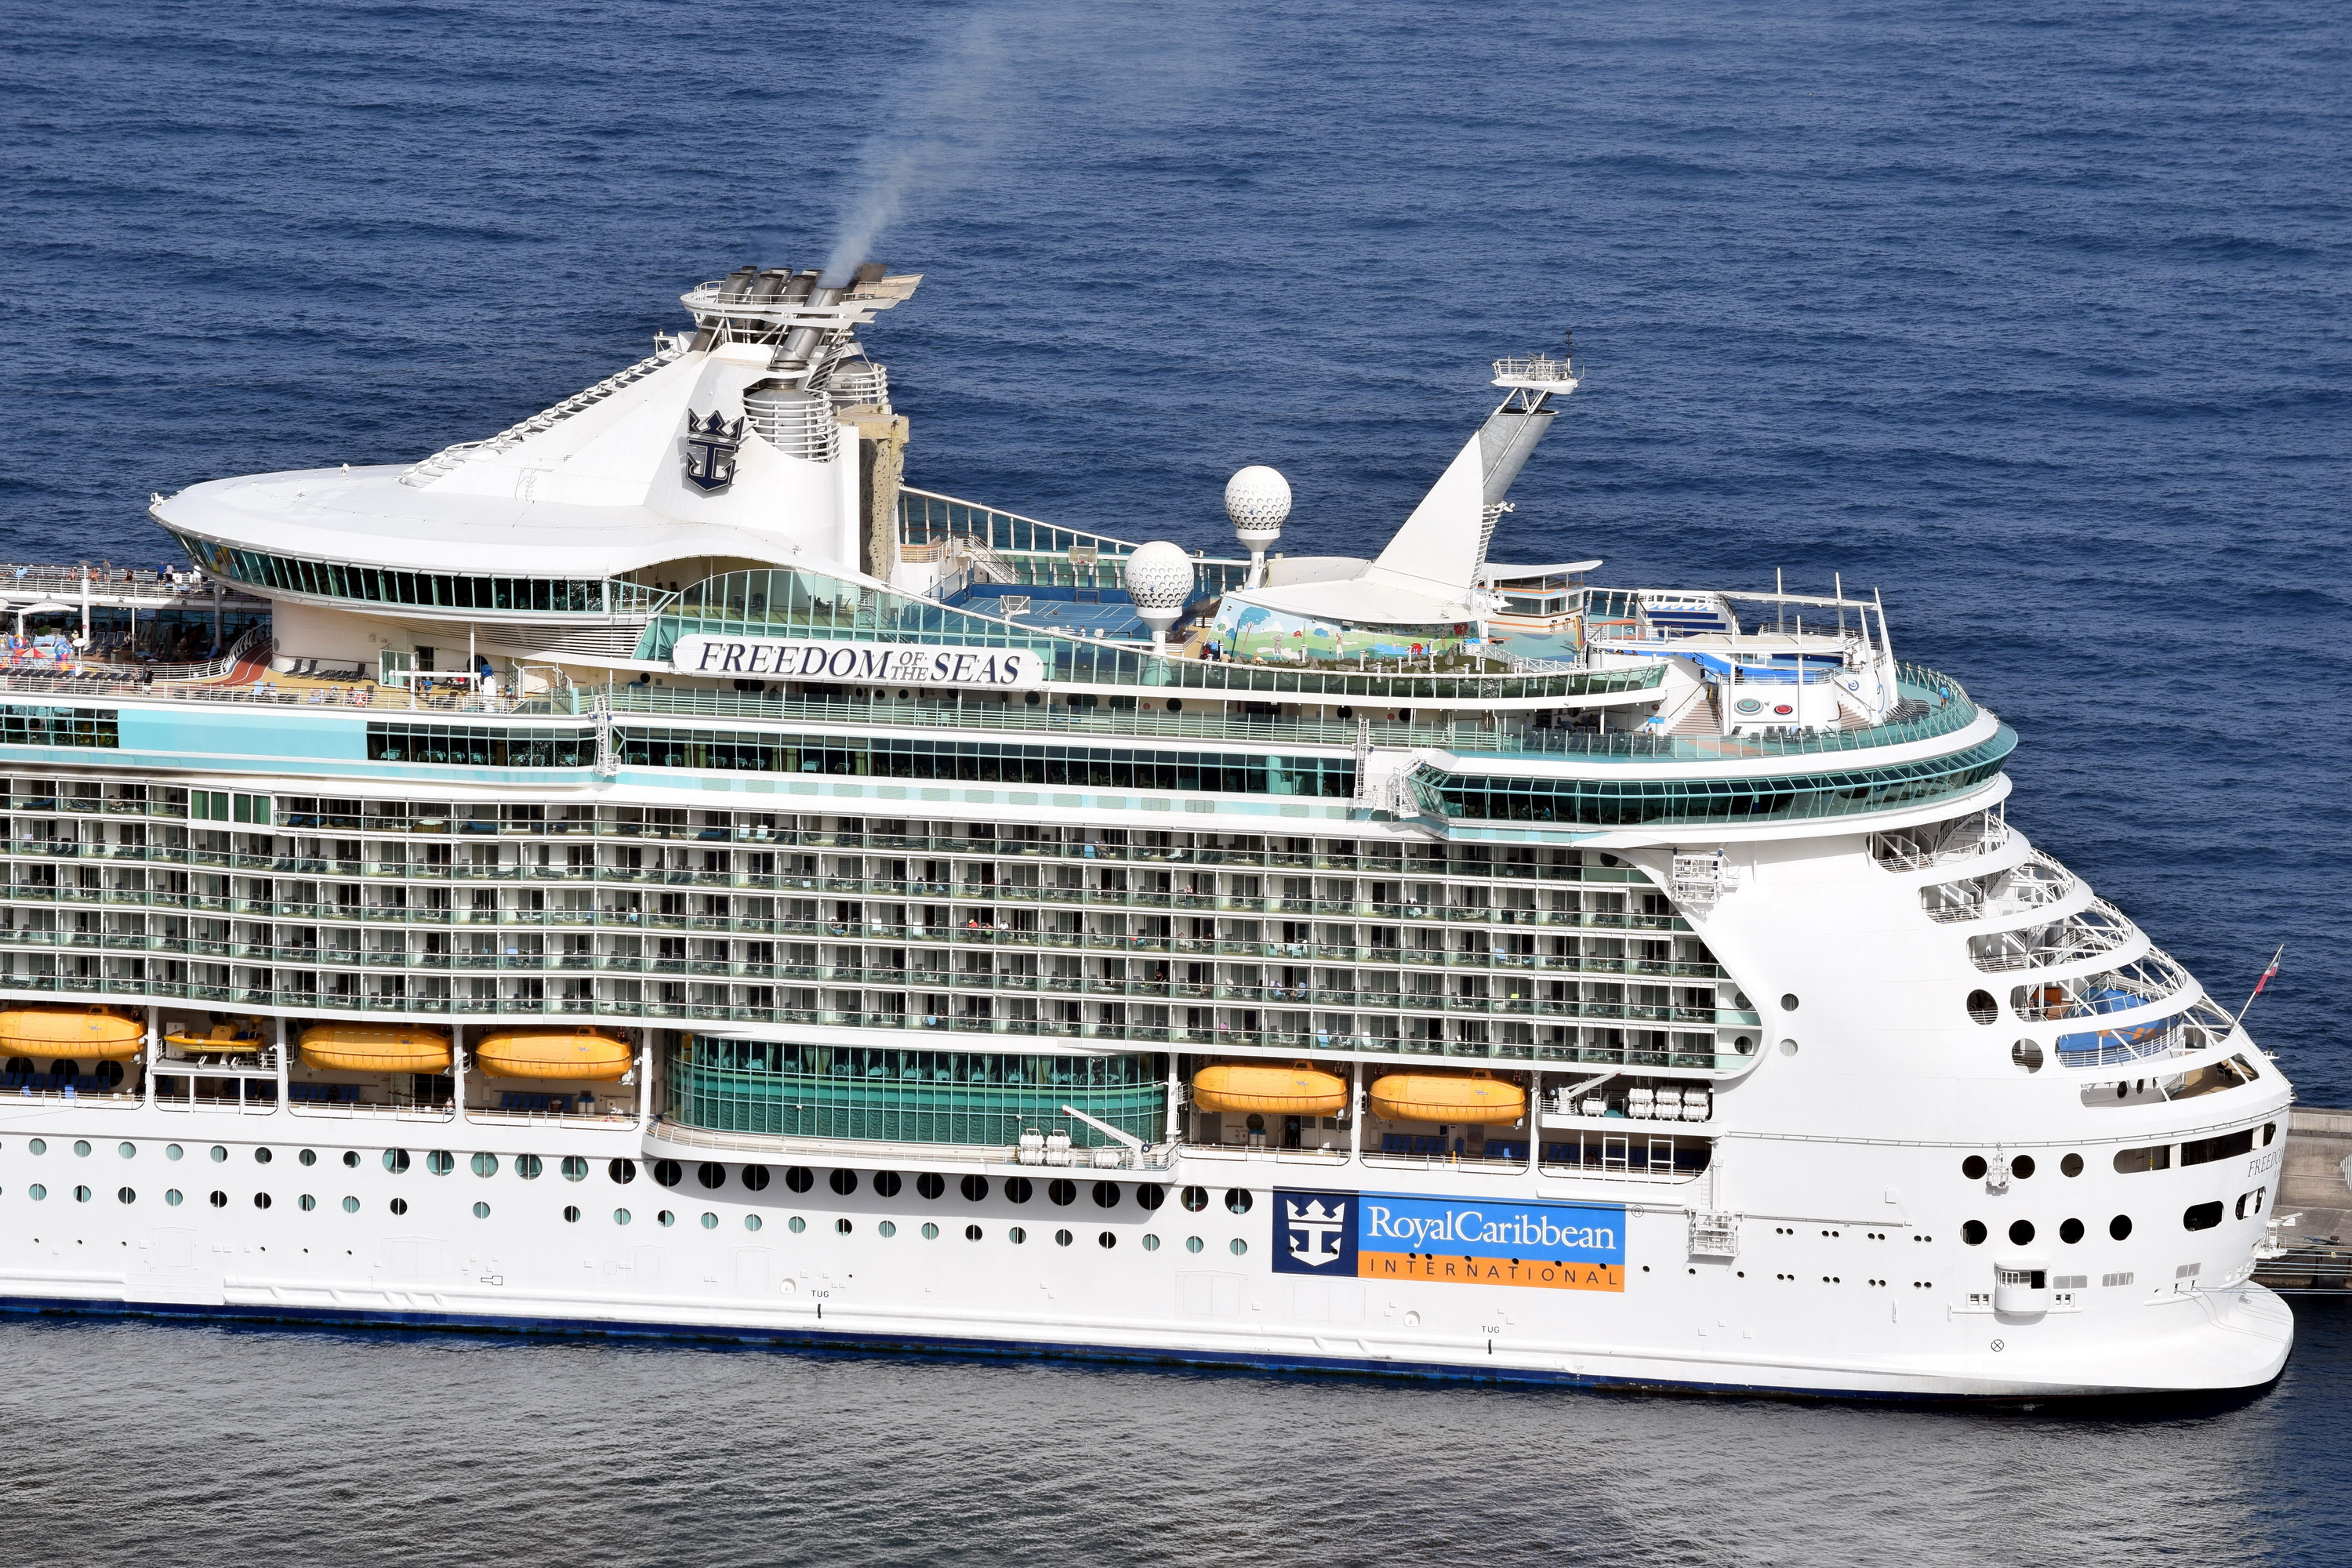 FREEDOM_OF_THE_SEAS_9304033_©Jorge_L